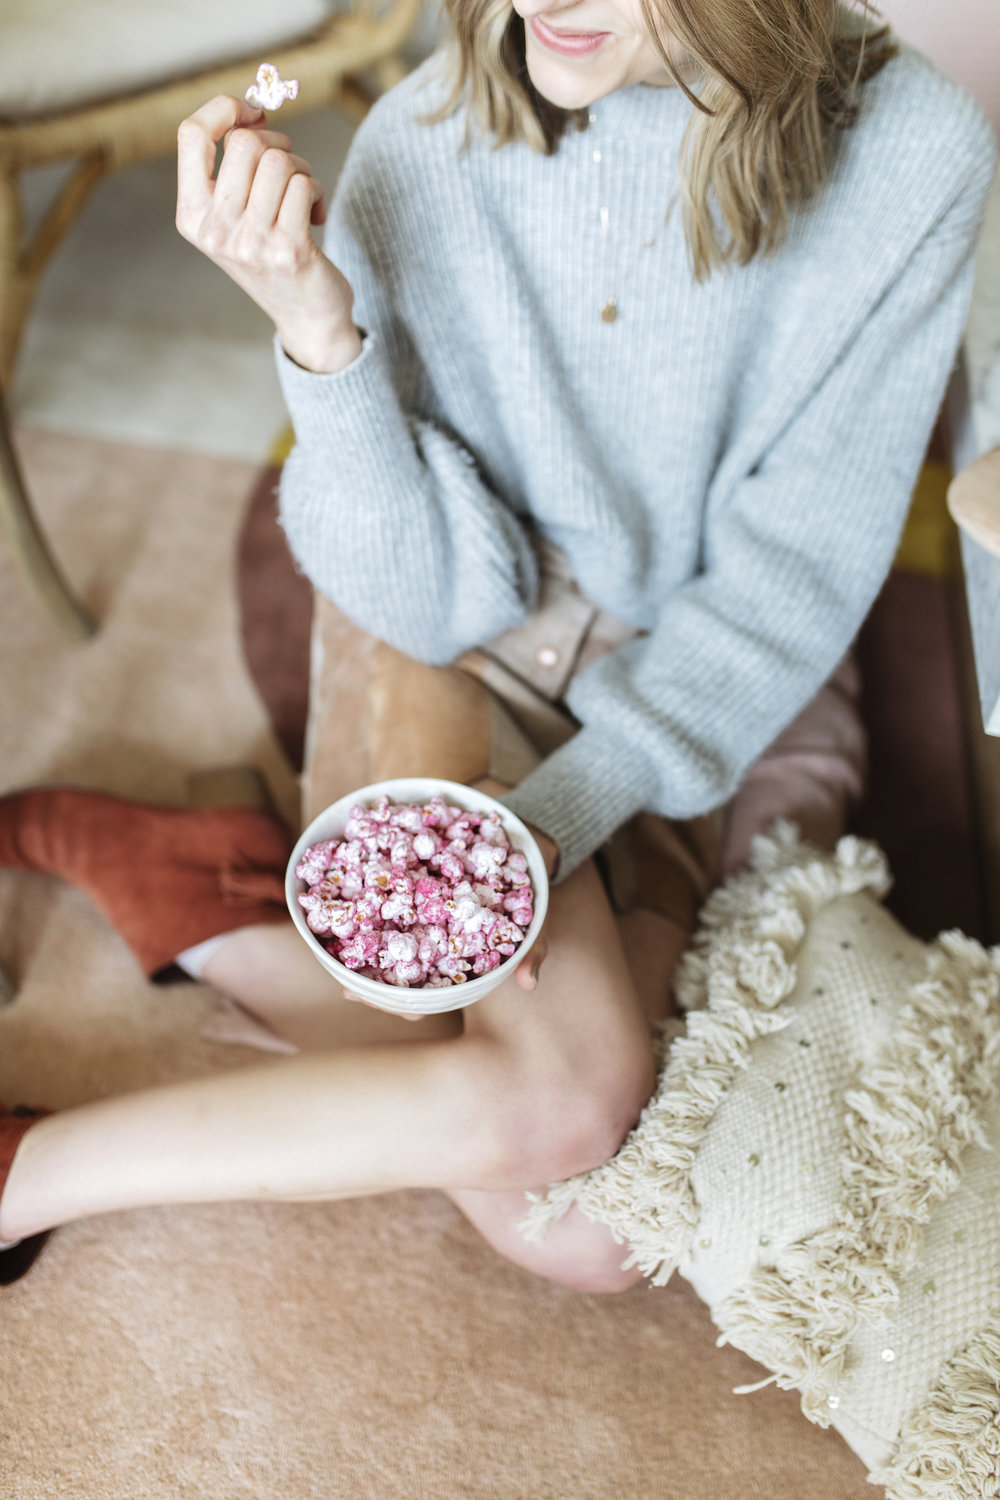 Have your closest gal pals over this week and show them your love with these festive frills. I kept the details super simple so you can pull it together in under 30 minutes! Pink dragonfruit popcorn is the way to go